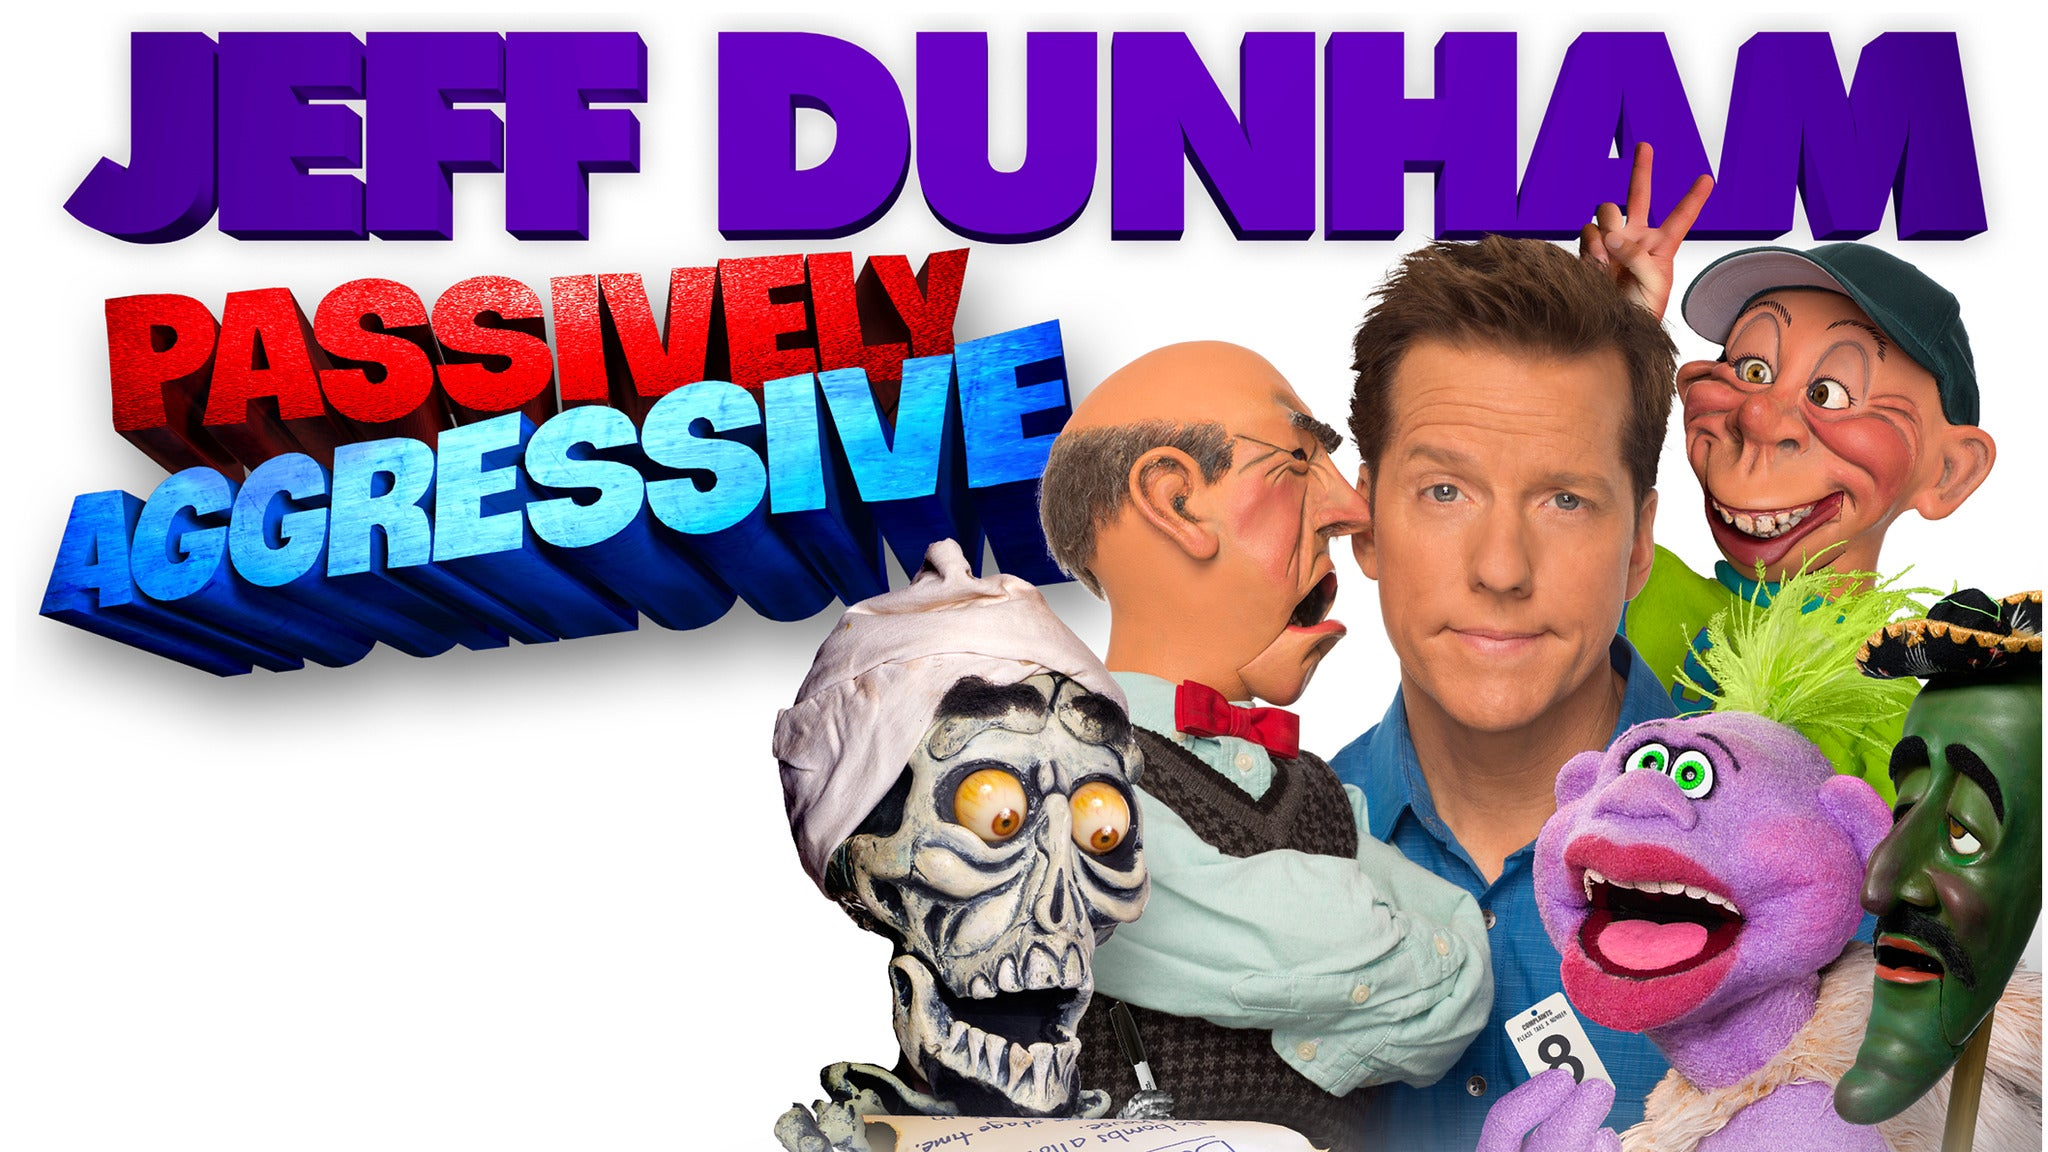 Jeff Dunham: Passively Aggressive at United Wireless Arena